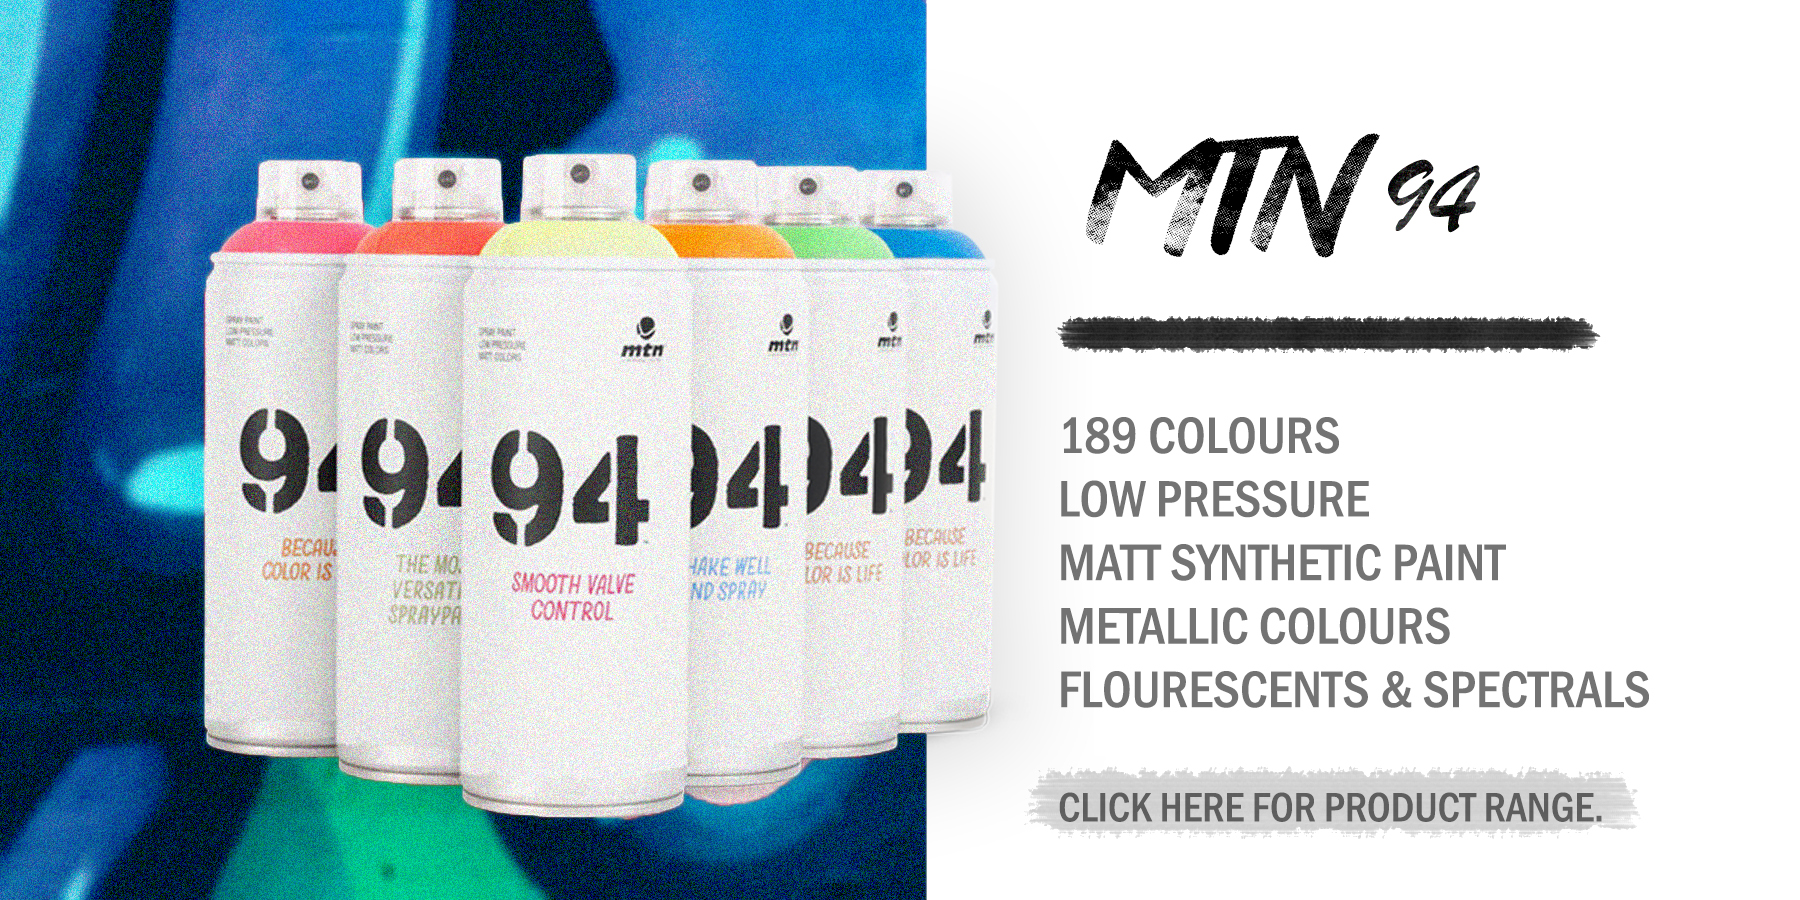 Bombe 94 pour malta graffiti shop – malta's first online graffiti shop